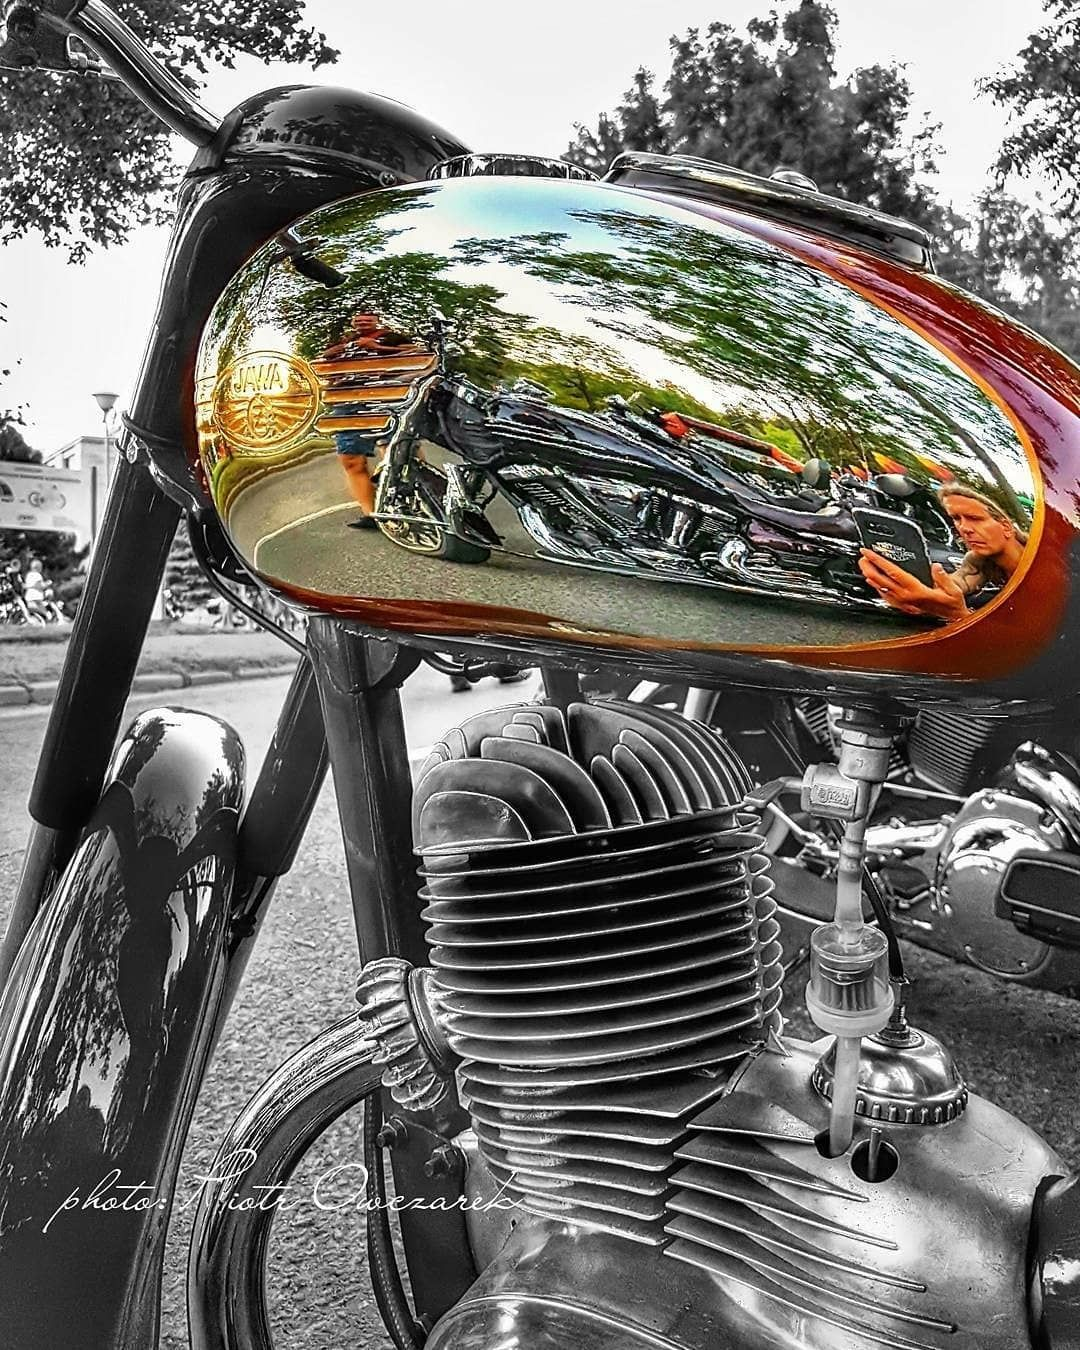 Pin By Keith Bell On Jawa South Africa Biker Art Motorcycle Photo